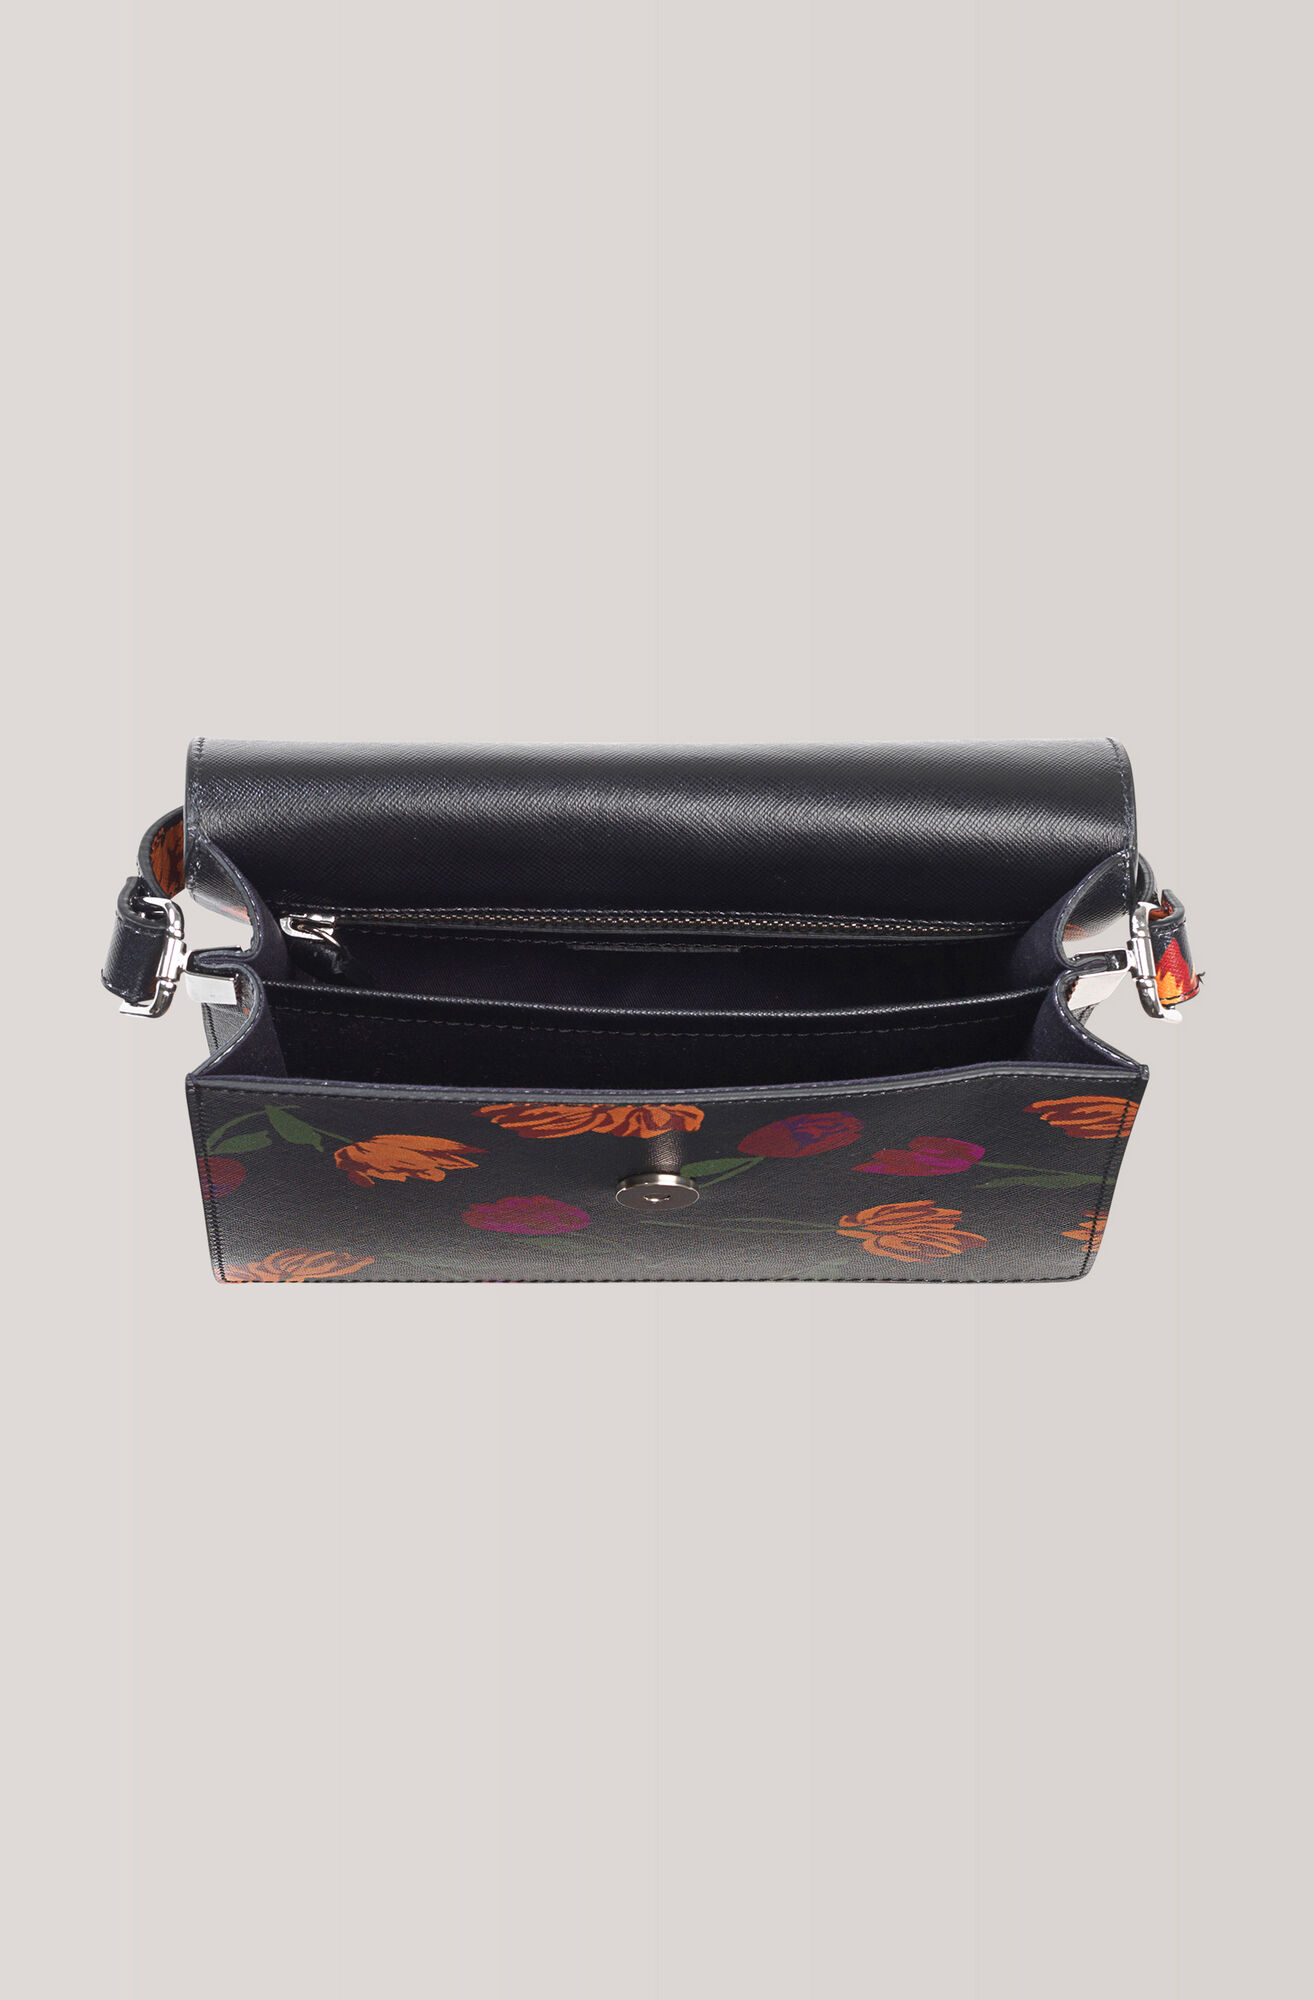 Gallery Accessories Bag, Black, hi-res